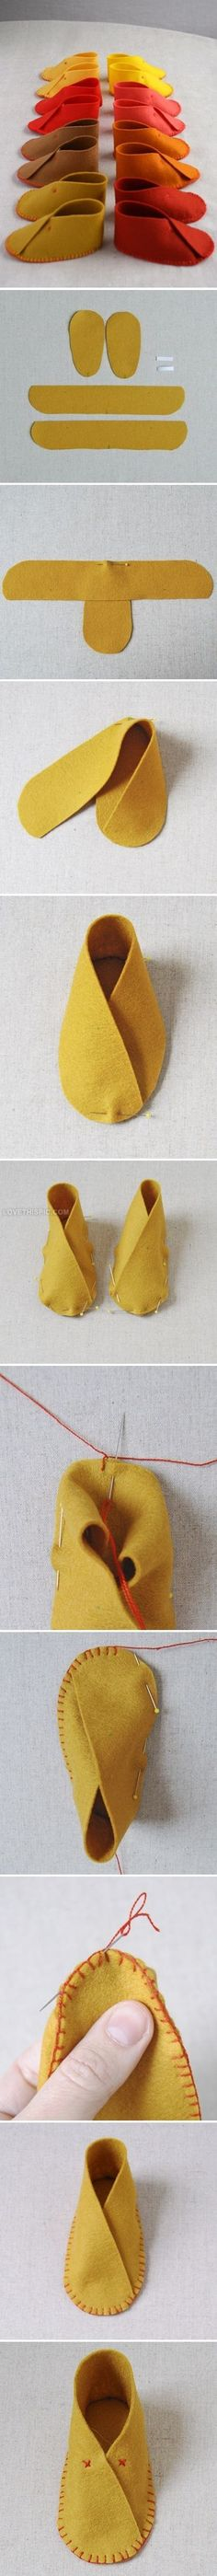 DIY Baby Shoes Pictures, Photos, and Images for Facebook, Tumblr, Pinterest, and Twitter